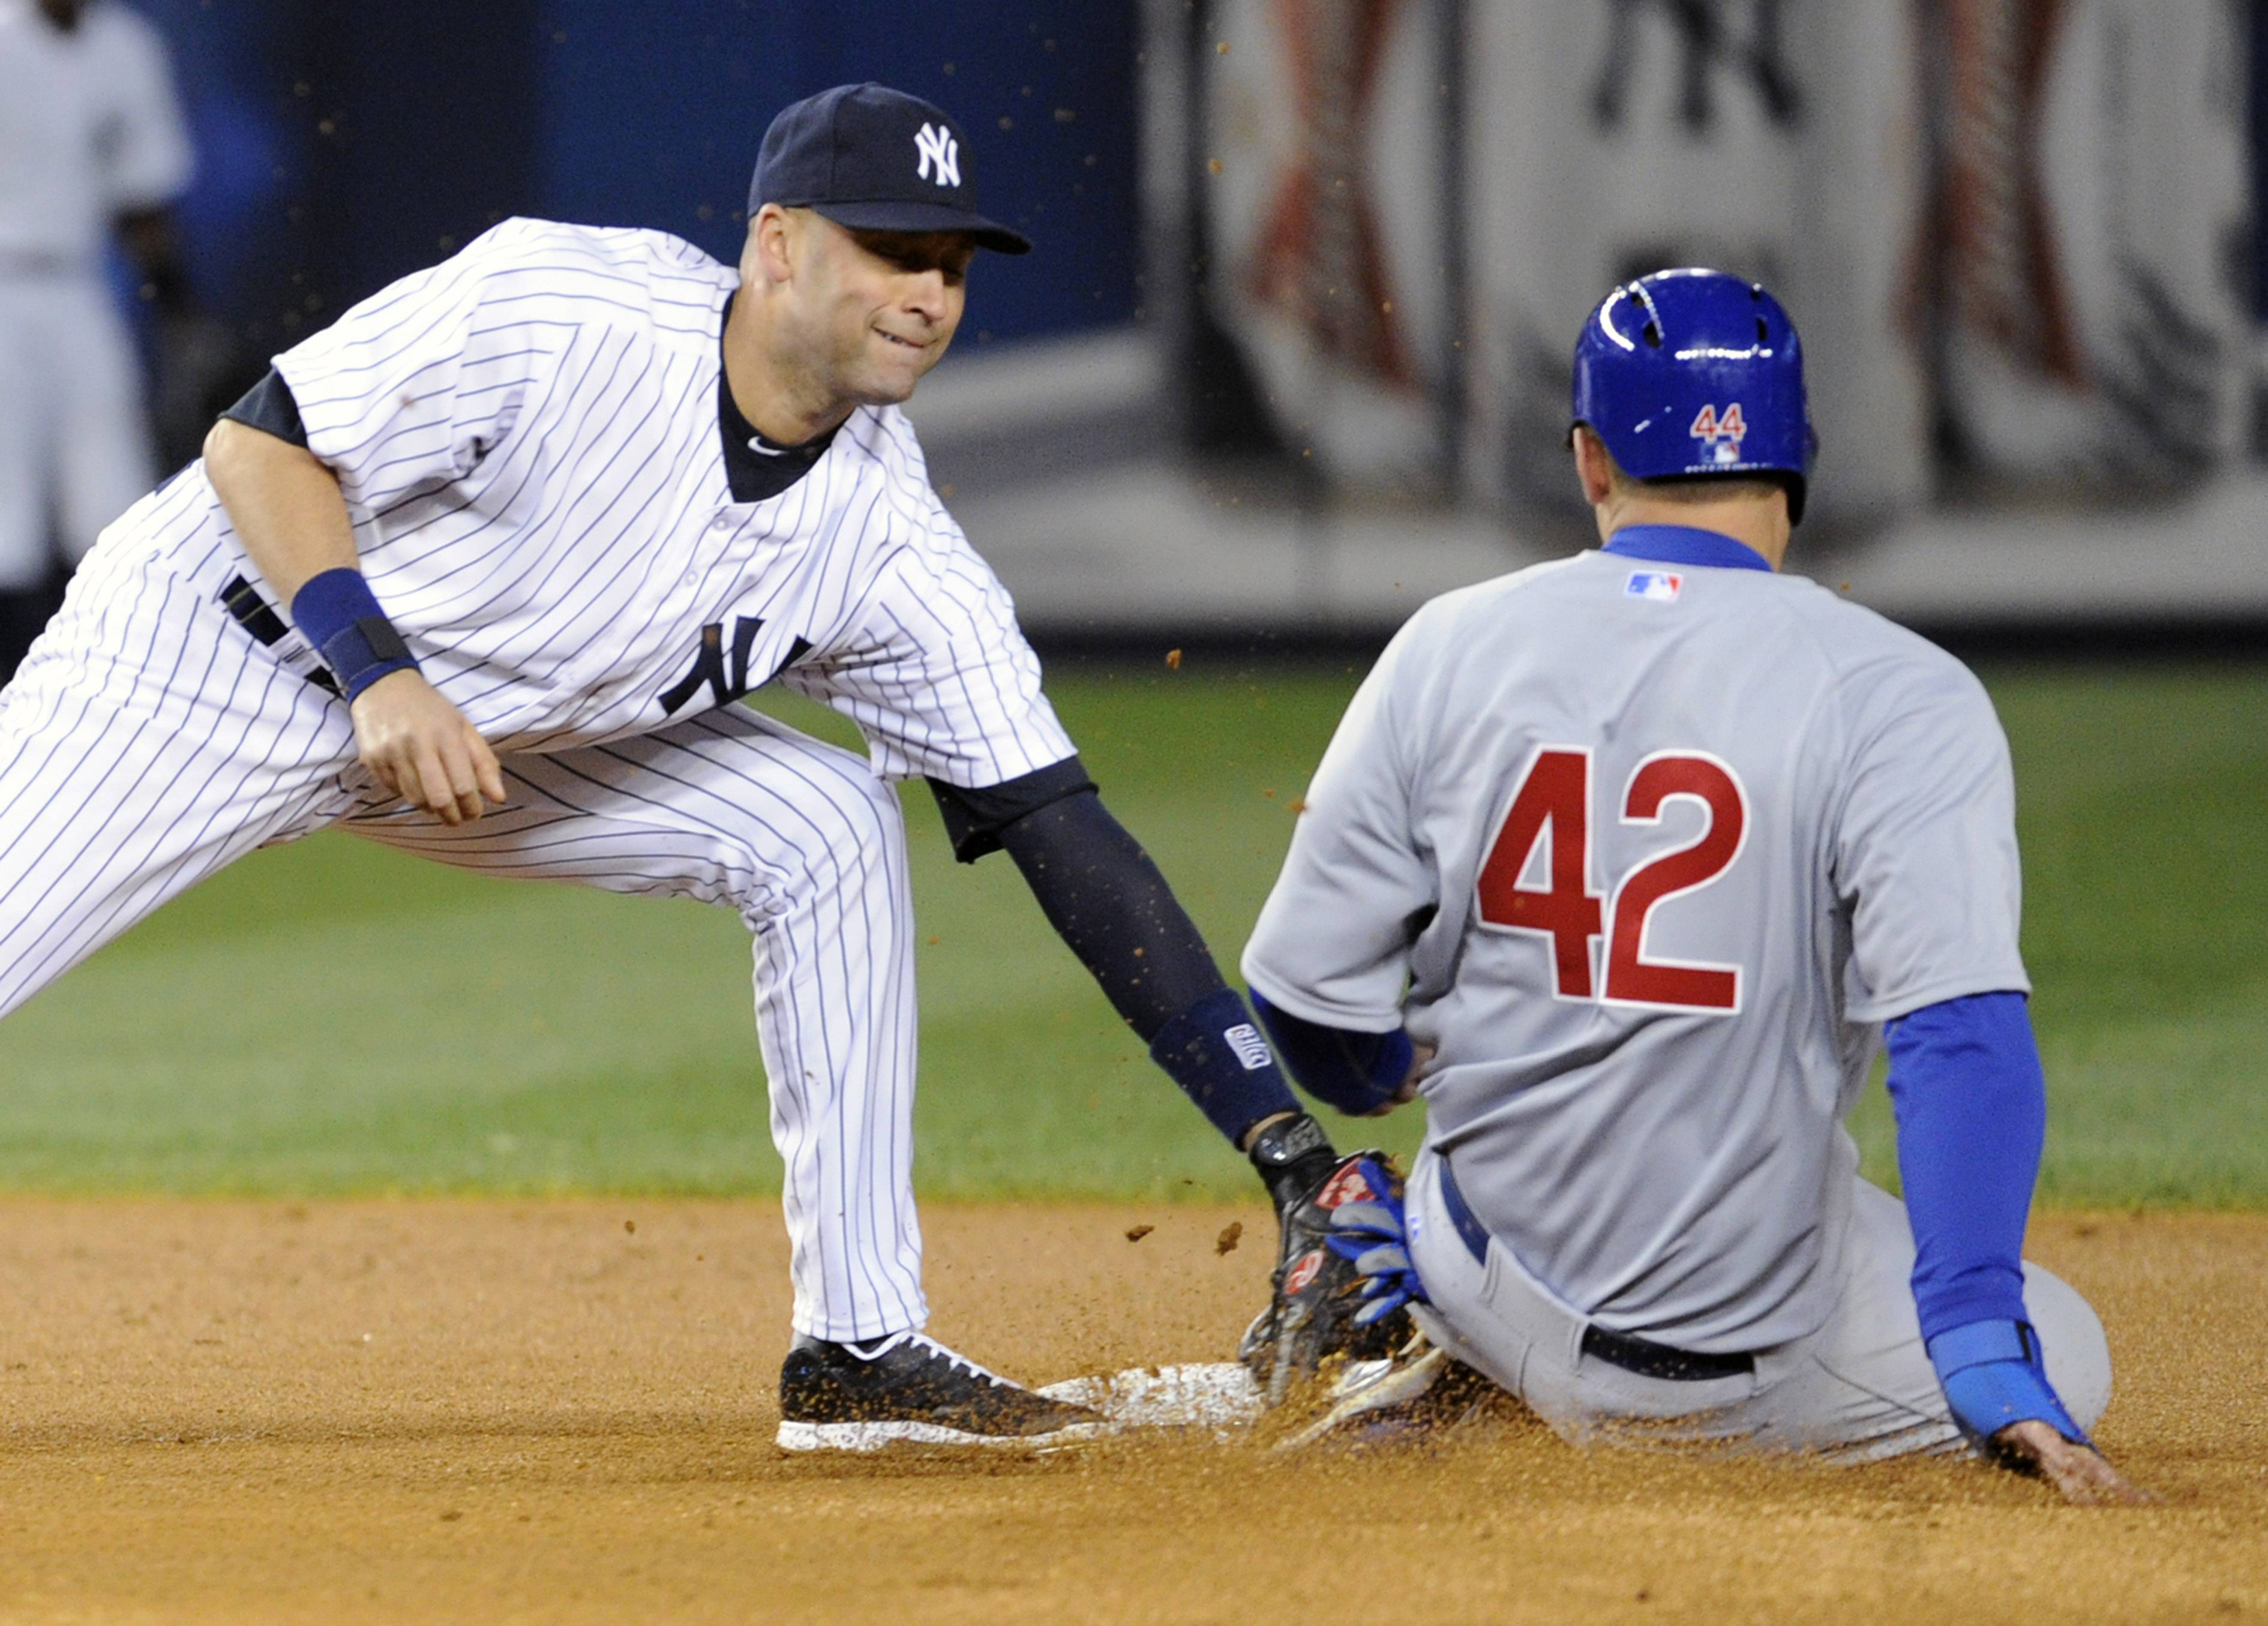 New York Yankees shortstop Derek Jeter, left, tags out Chicago Cubs' Anthony Rizzo who was attempting to steal second base during the fourth inning of Game 2 of an interleague baseball doubleheader on Wednesday, April 16, 2014, at Yankee Stadium in New York.